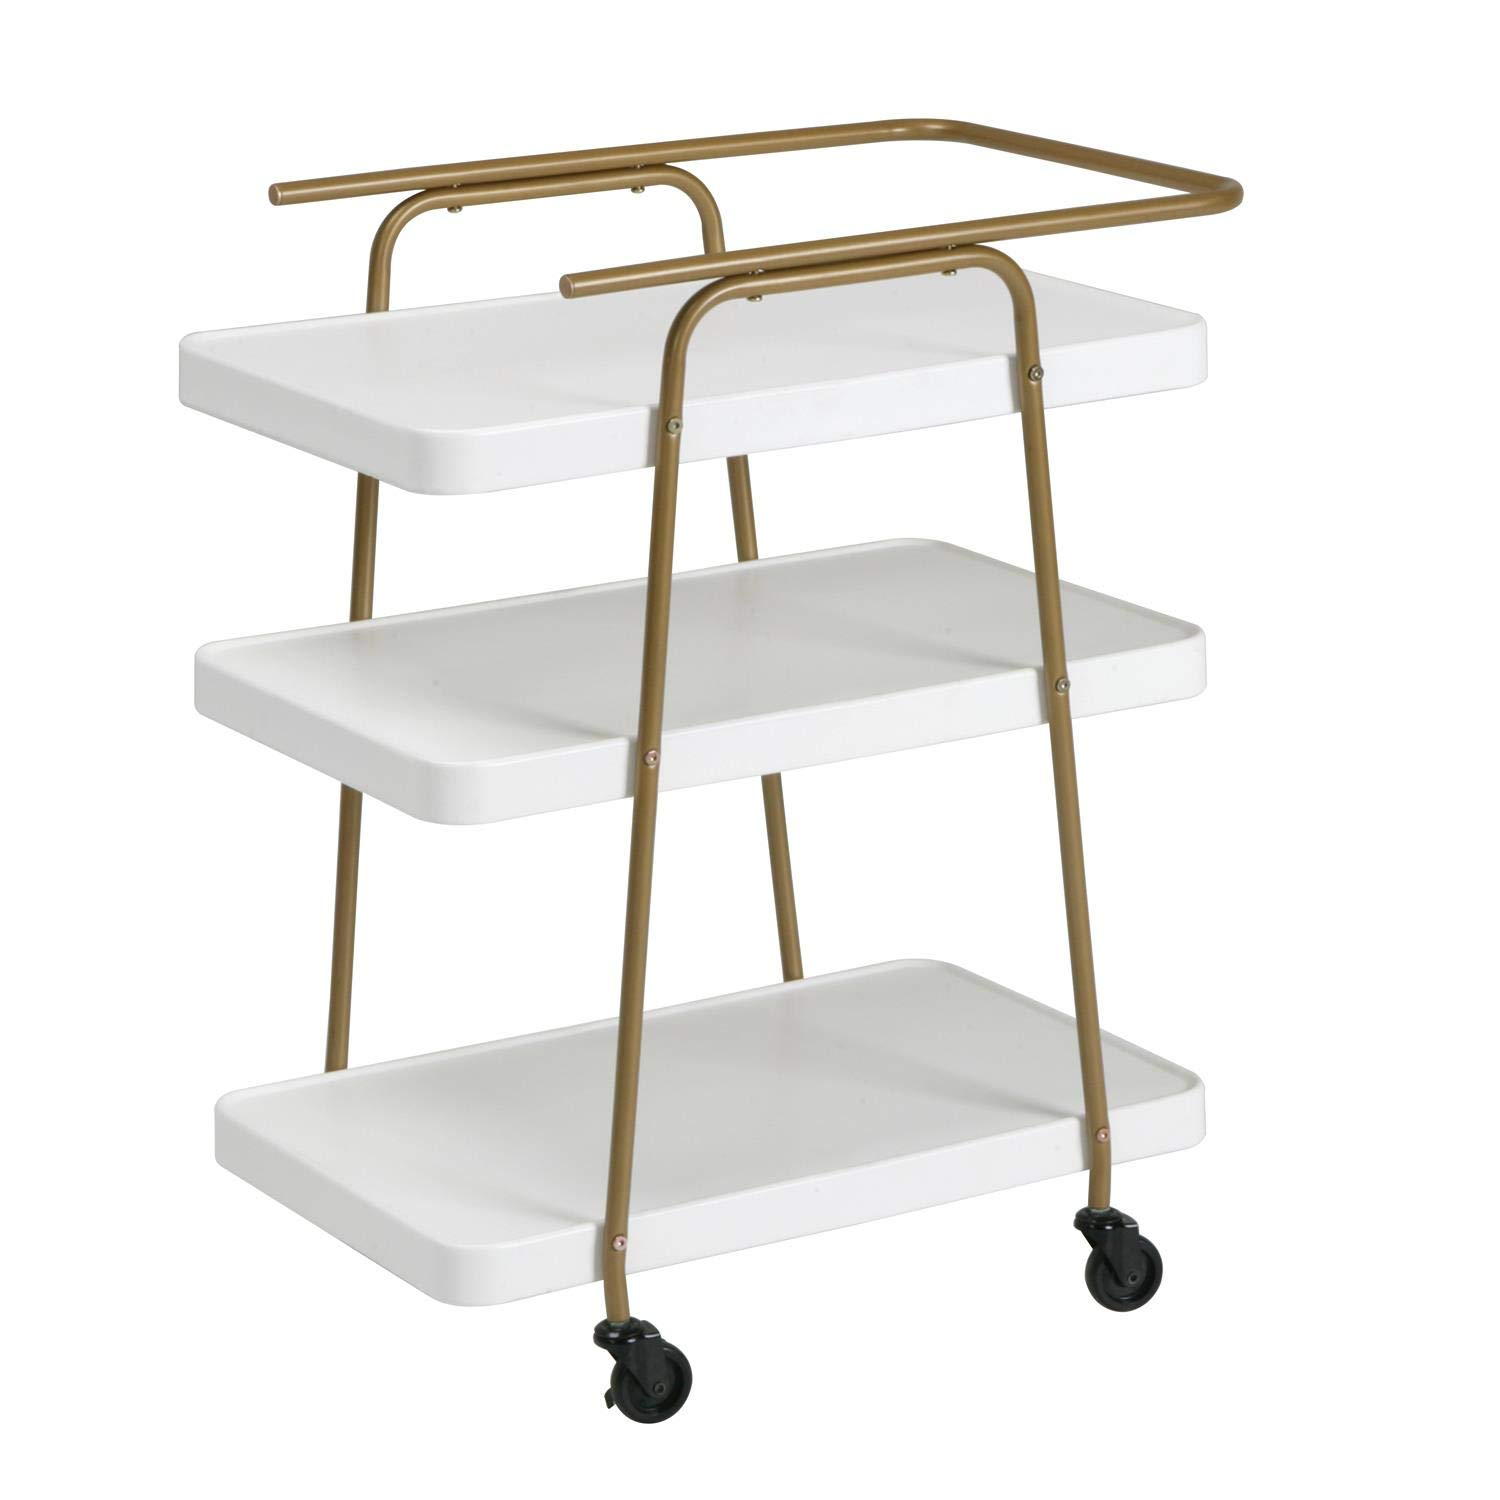 COSCO Stylaire 3 Tier Serving Cart, White & Gold by Cosco